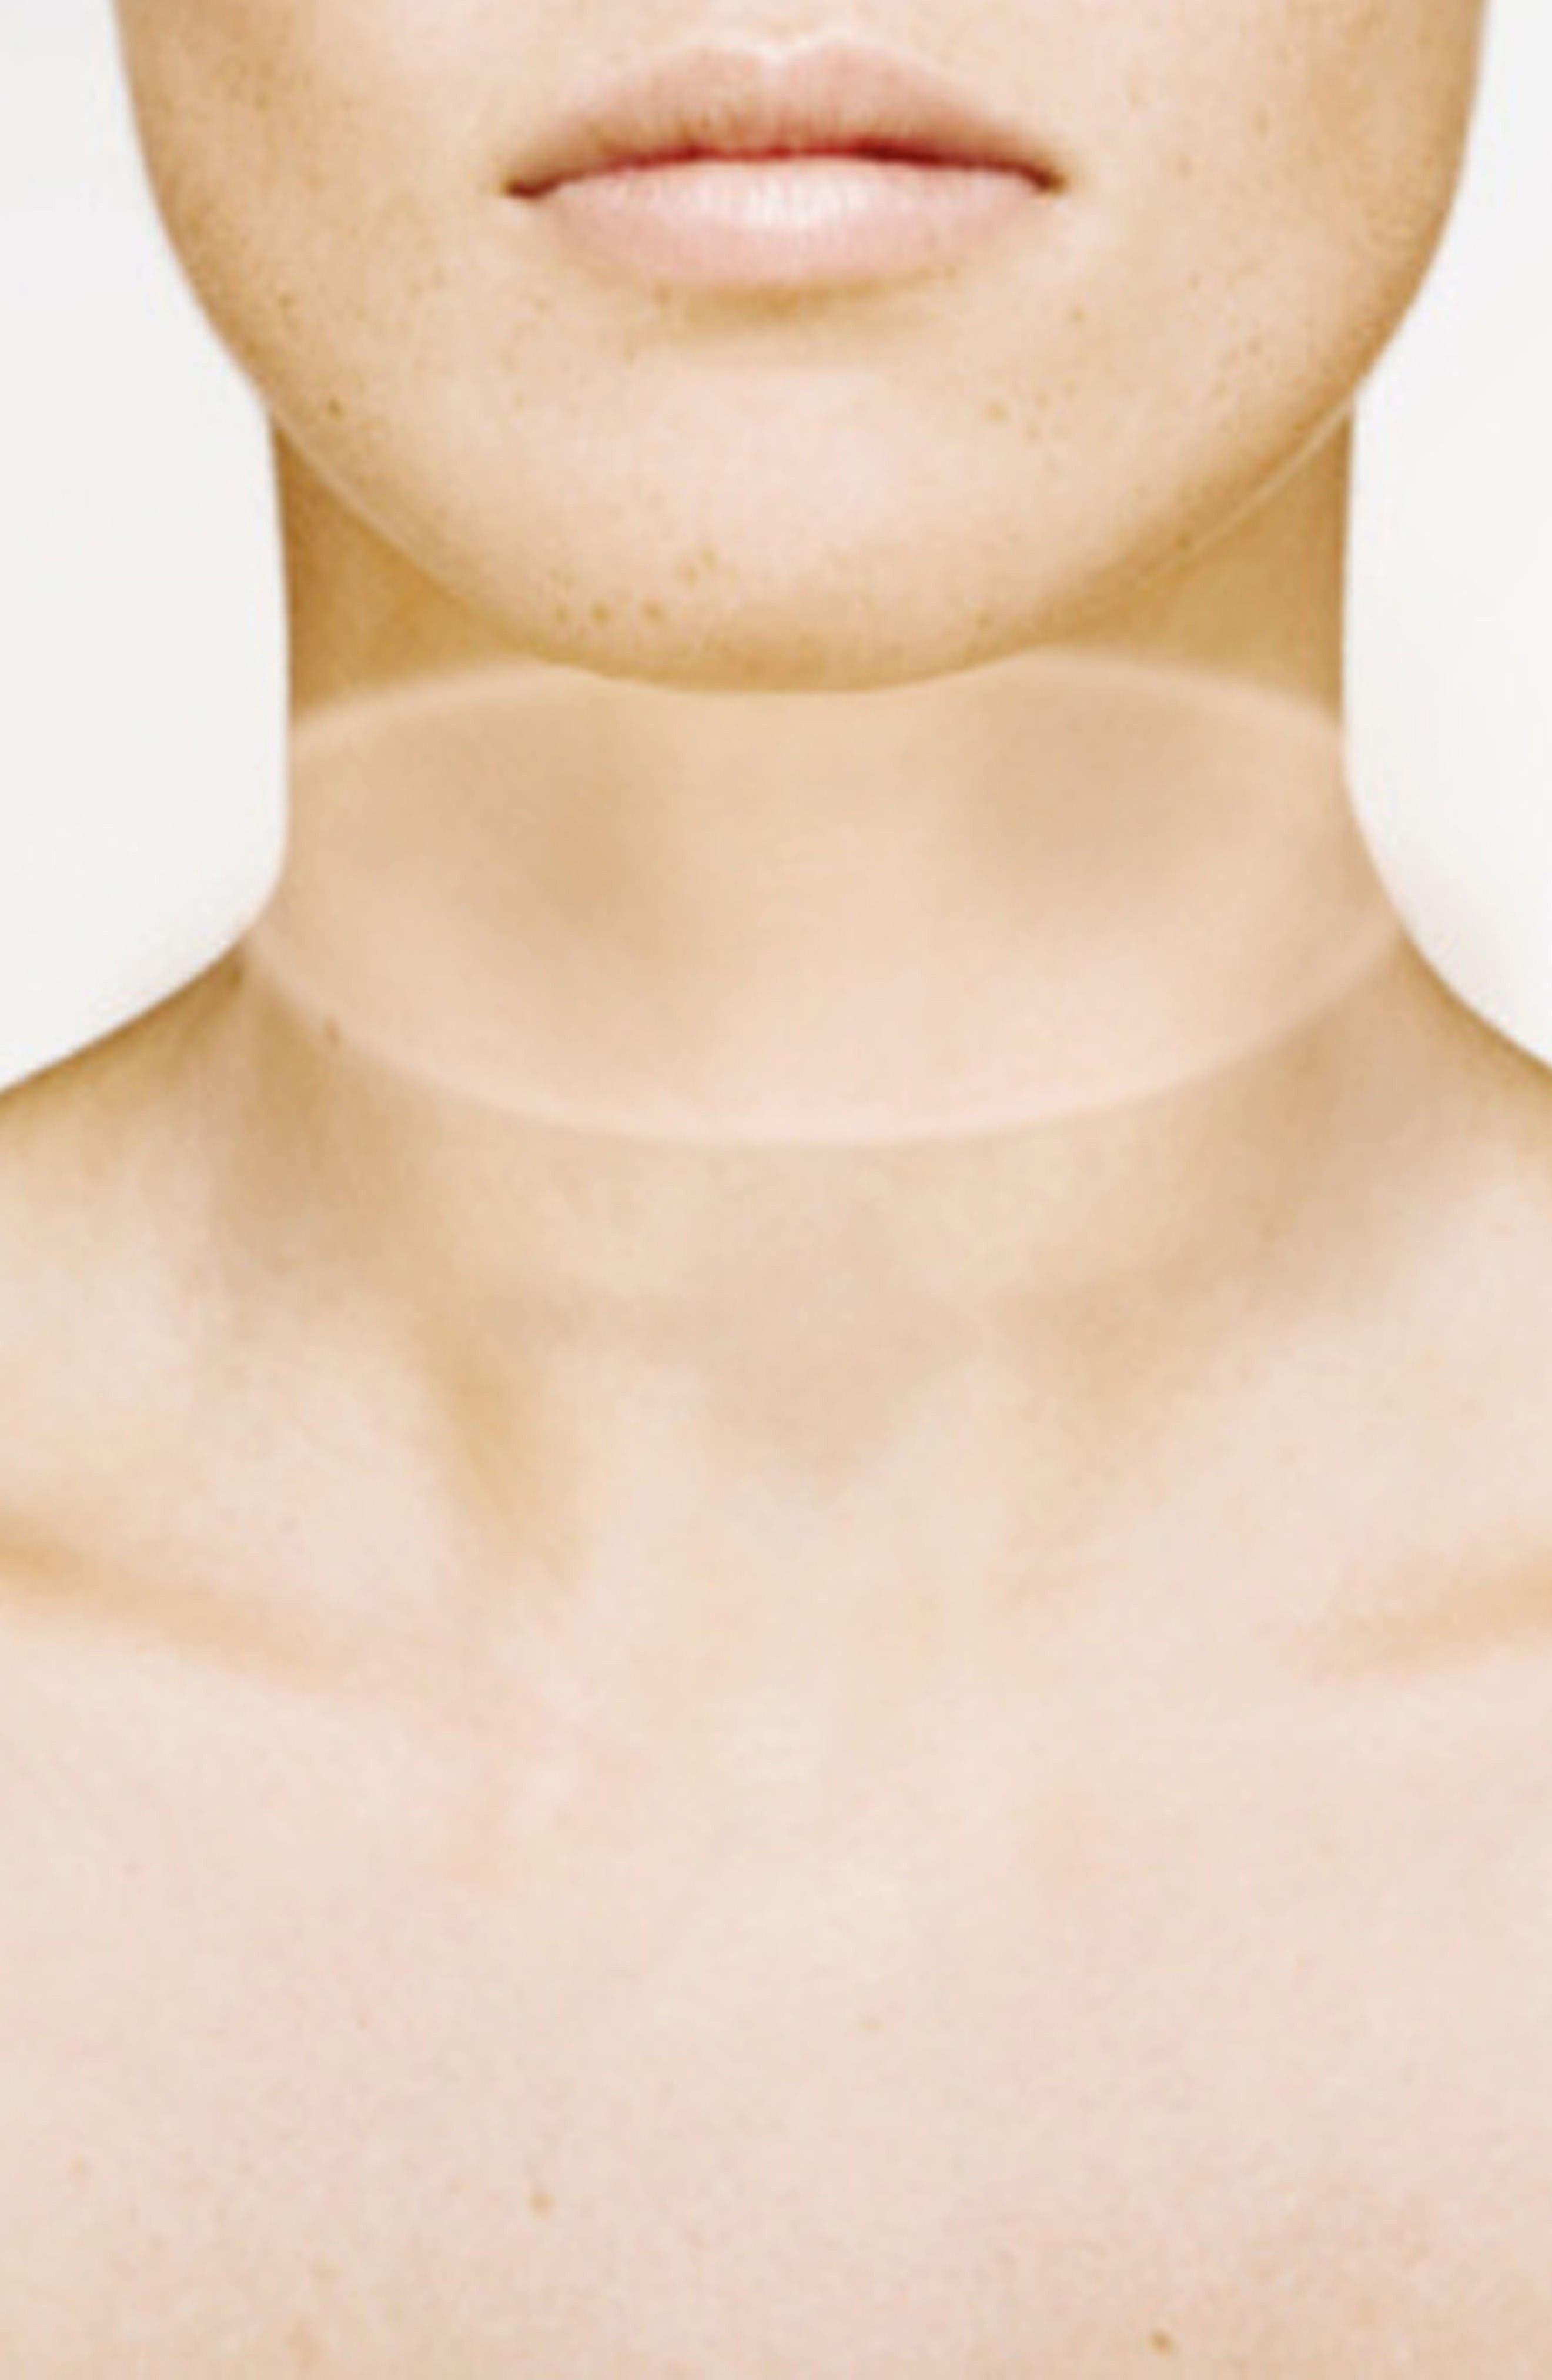 Neck Smoothing Kit,                             Alternate thumbnail 2, color,                             No Color